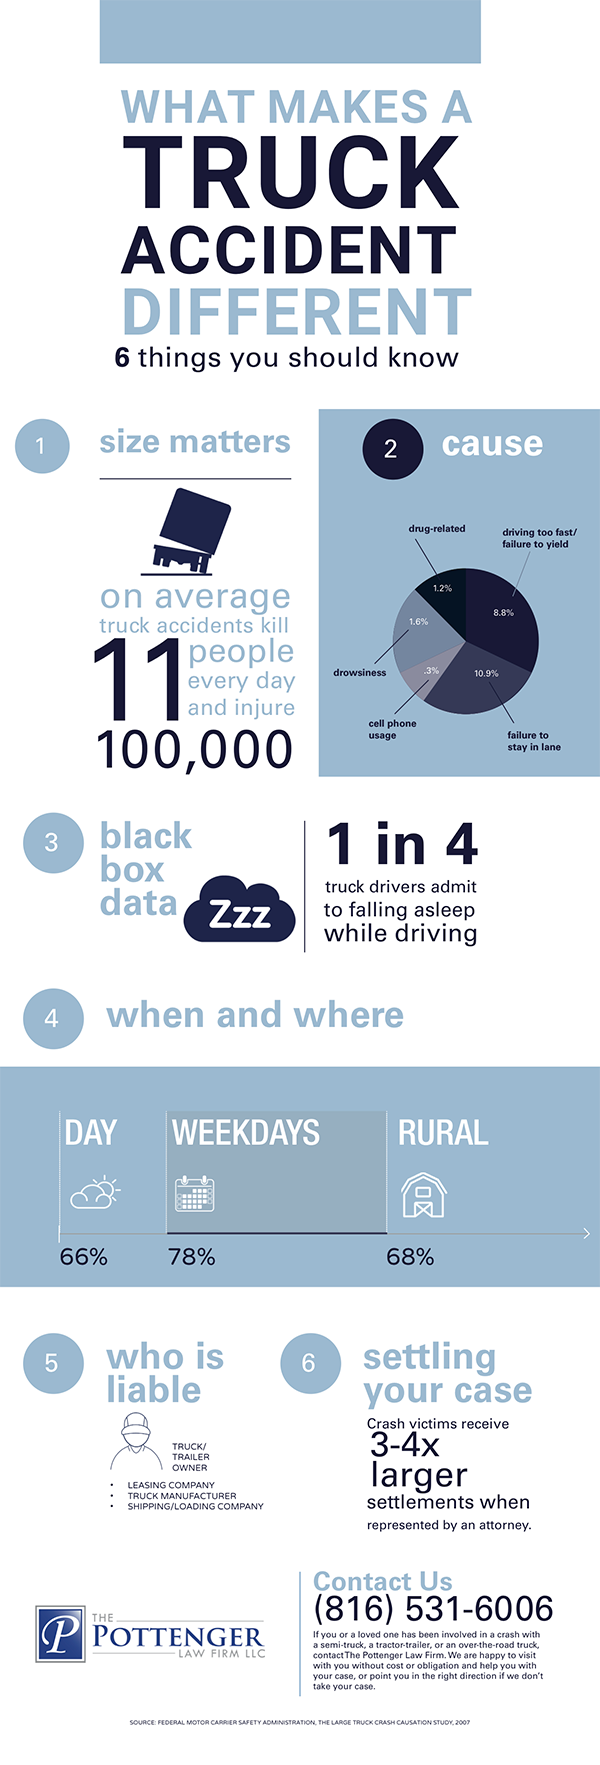 pottenger truck accidents infographic 3116 (1)-600w